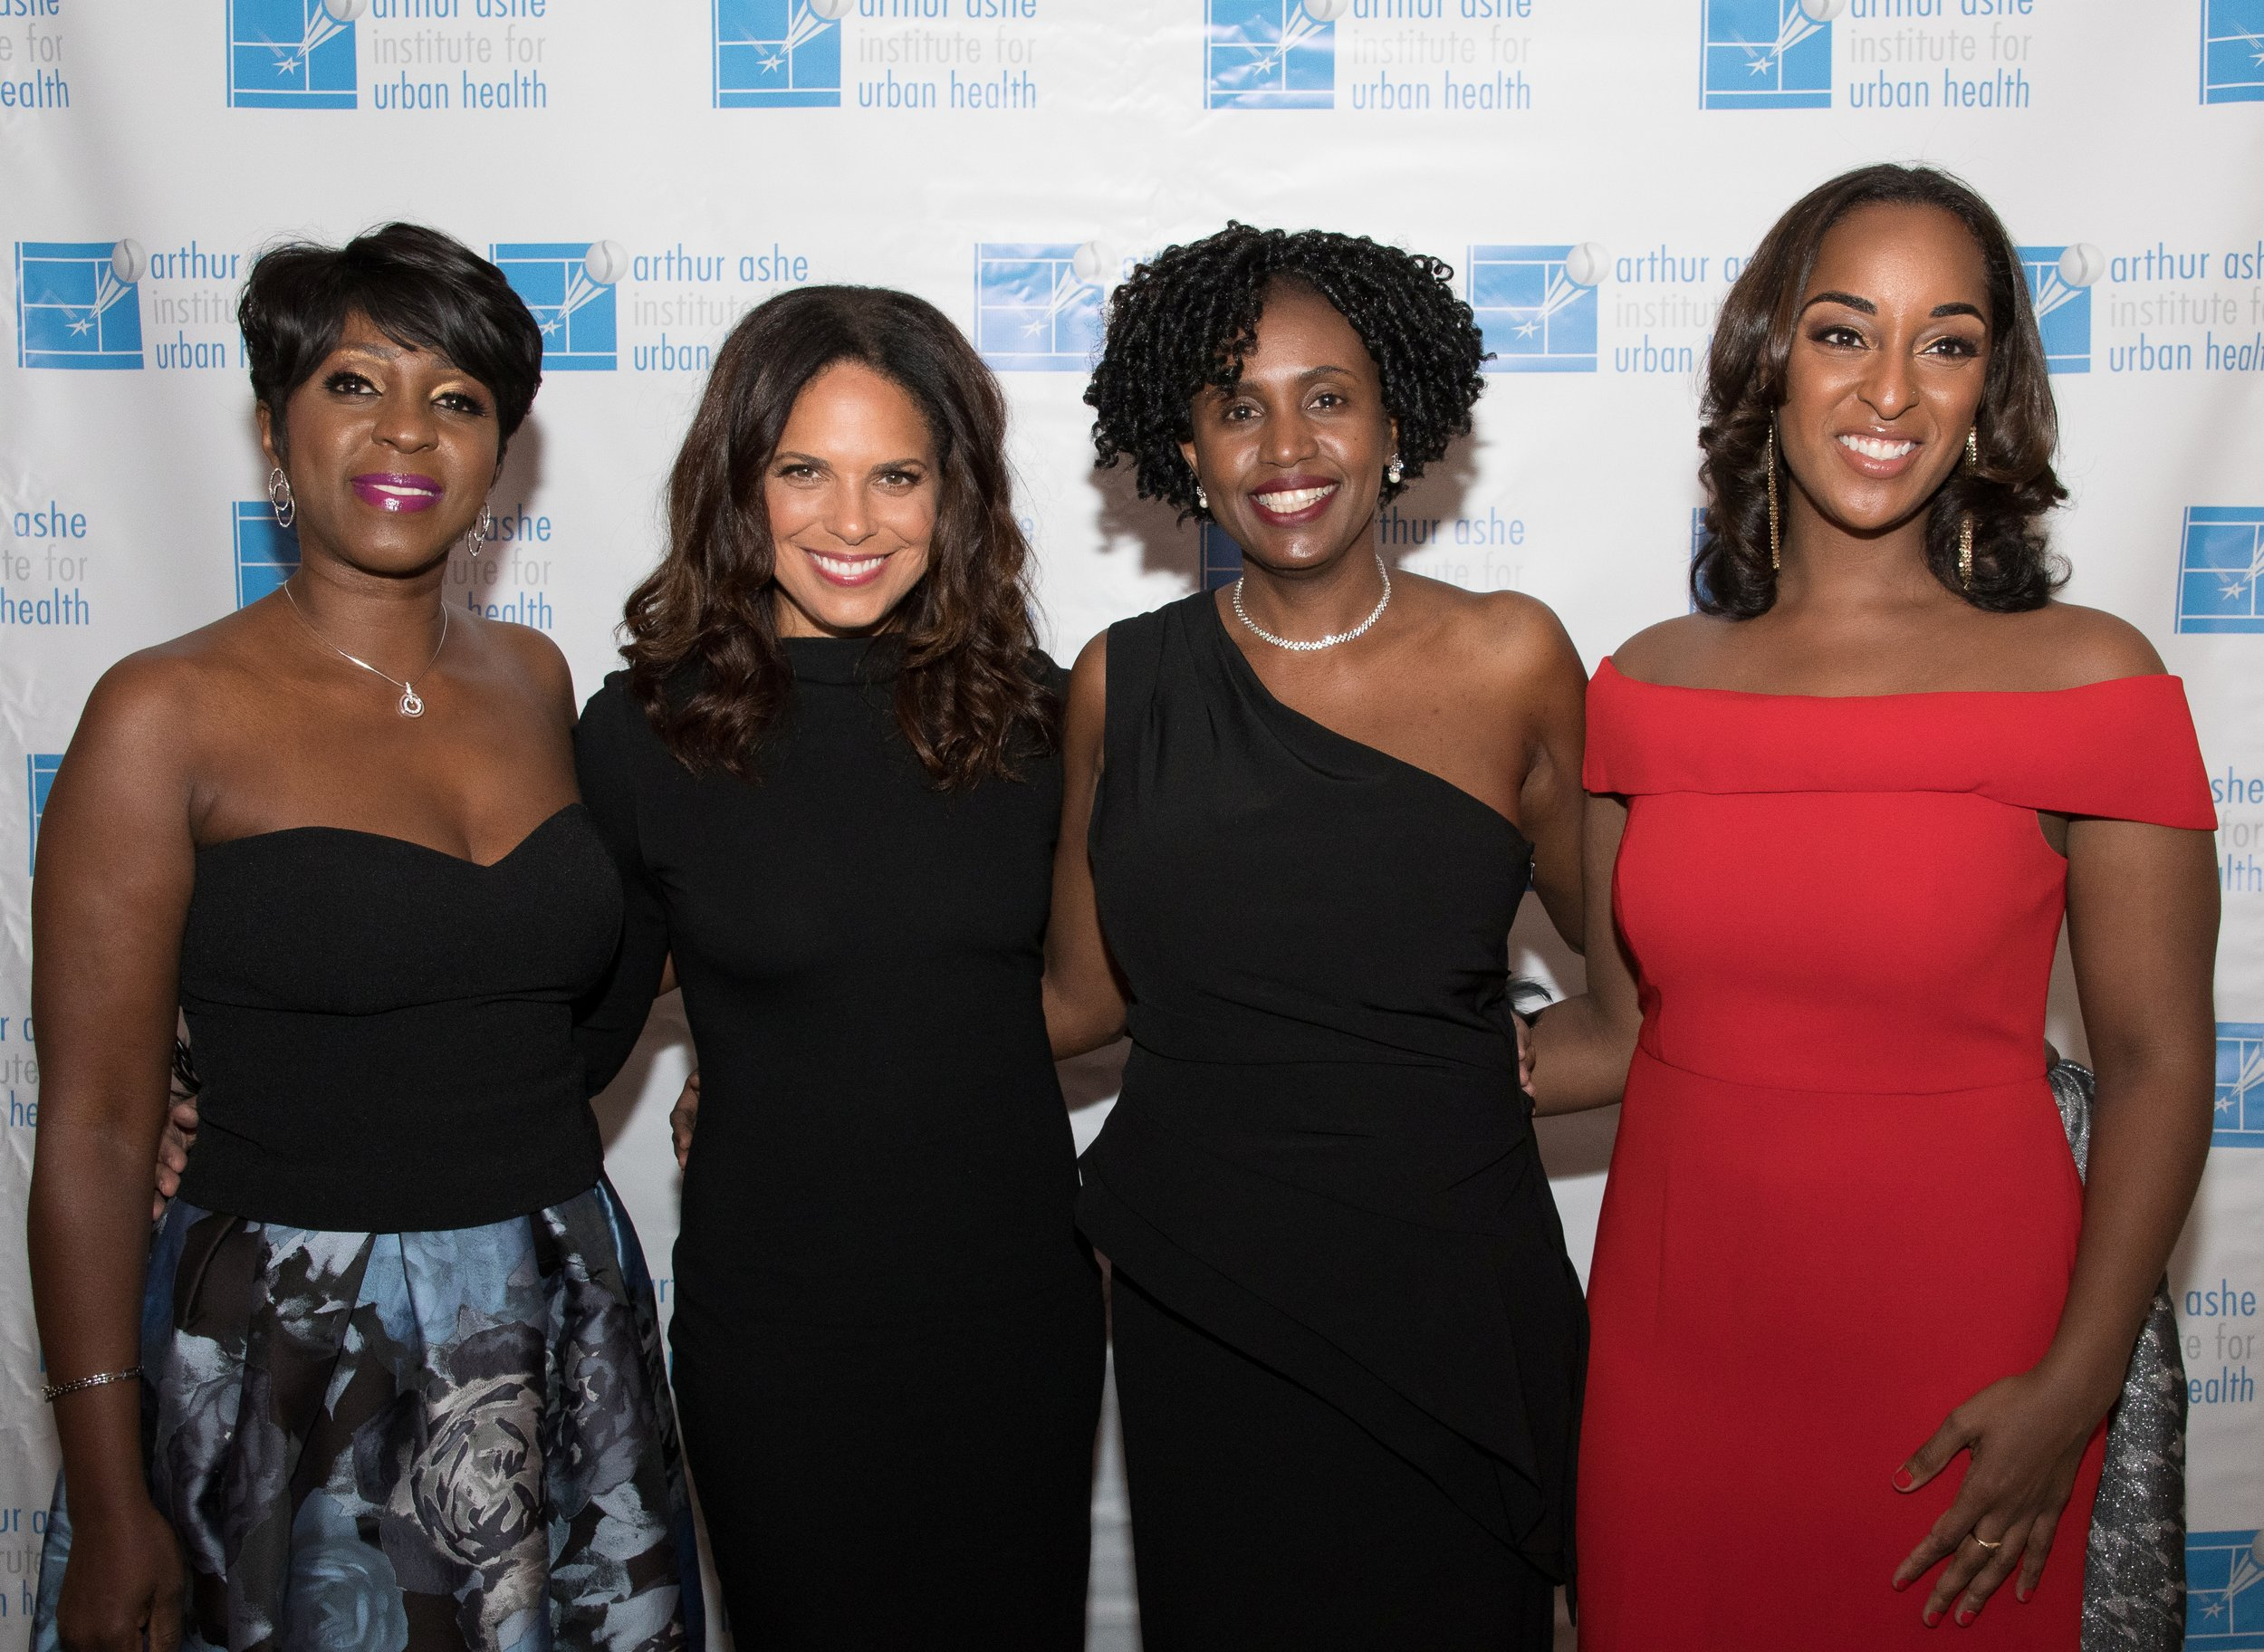 Cheryl Wills, Soledad O'Brien, Dr. Marilyn A. Fraser and Natasha Alford.jpg